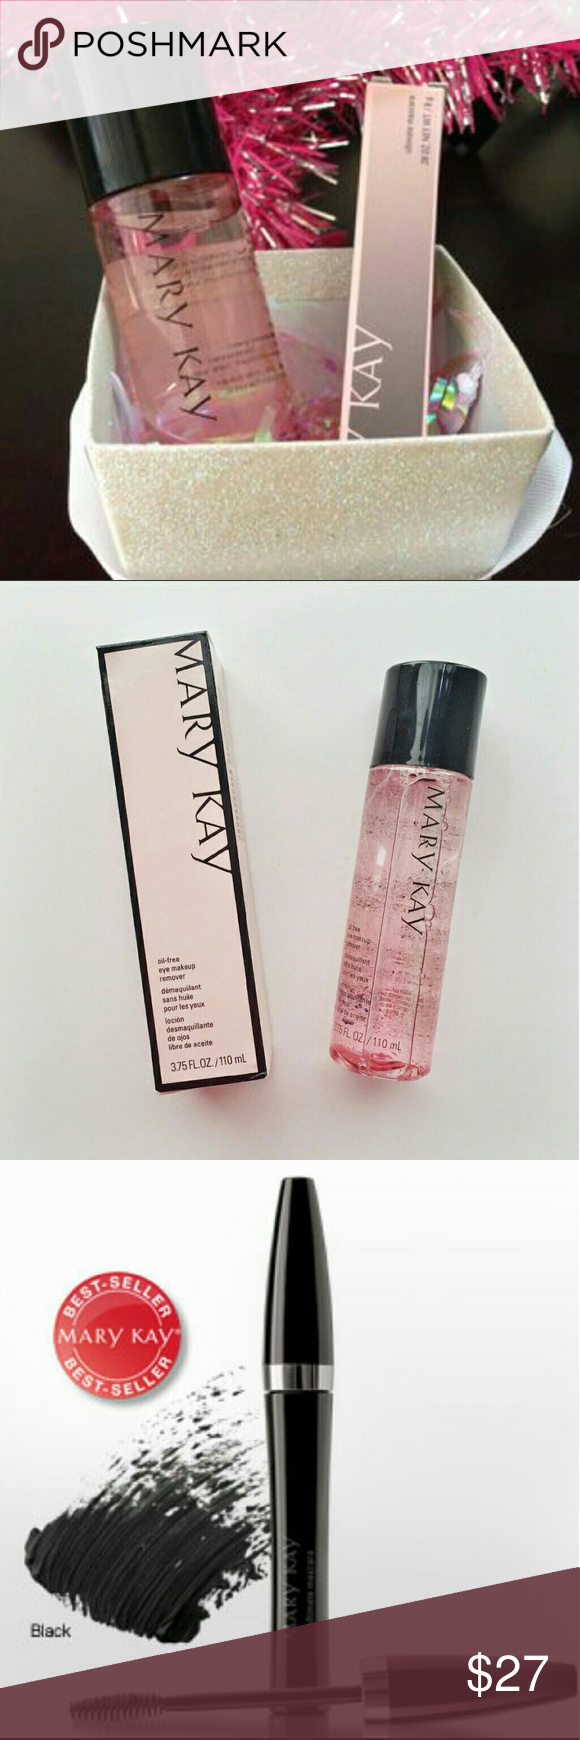 Make-up bundle Oil free Make-up remover and Mary Kay's best top selling mascara in black.  Brand new sorry no trades ship next day. Mary Kay Makeup Mascara